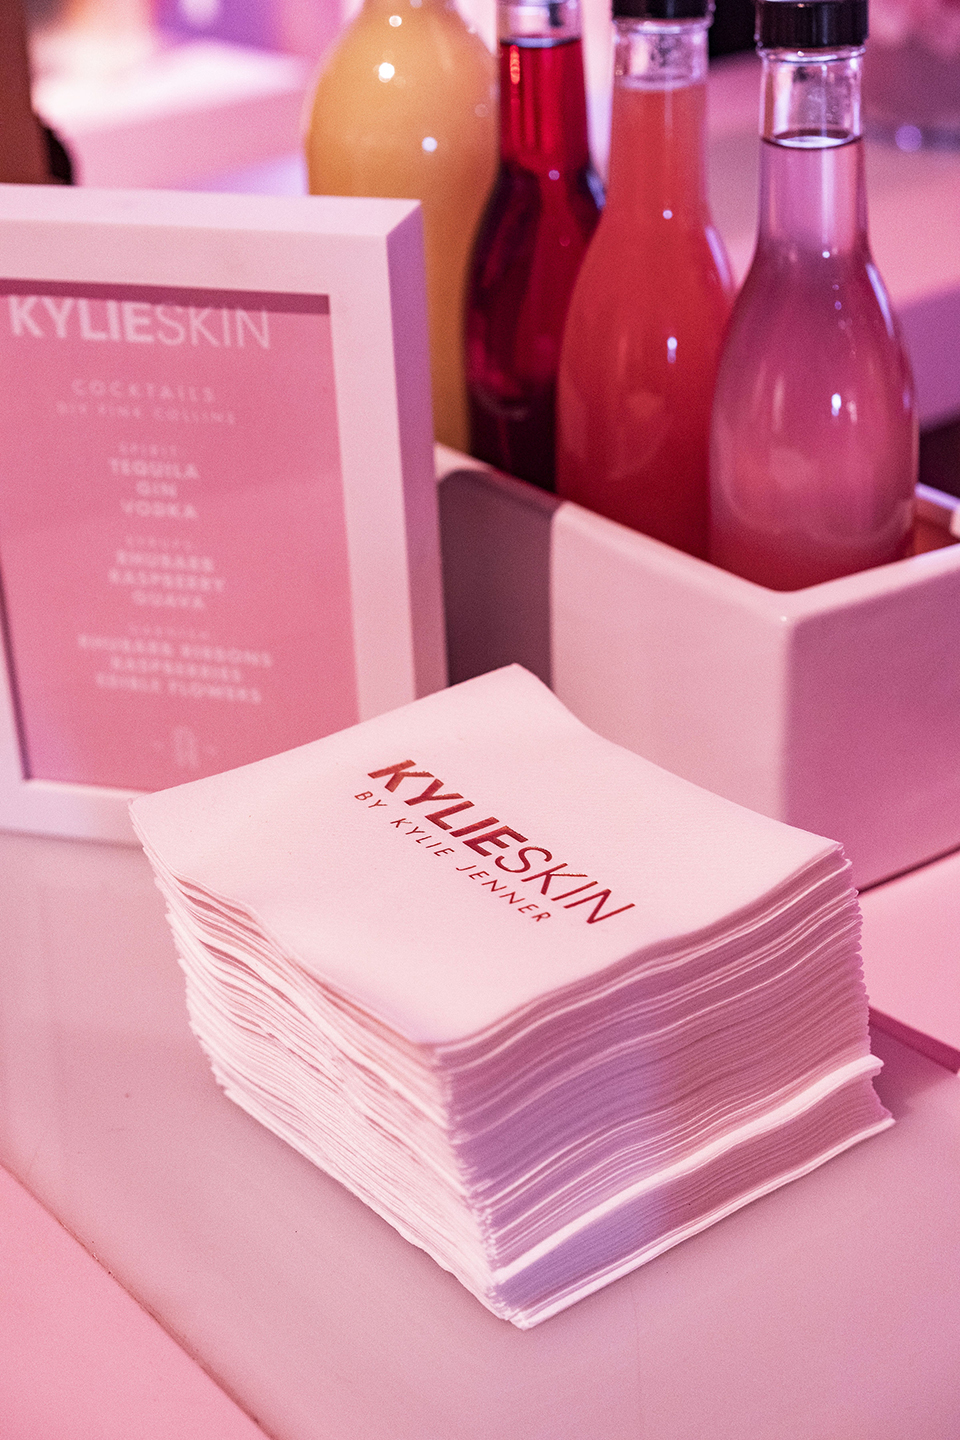 kylieskin_launch_216.jpg